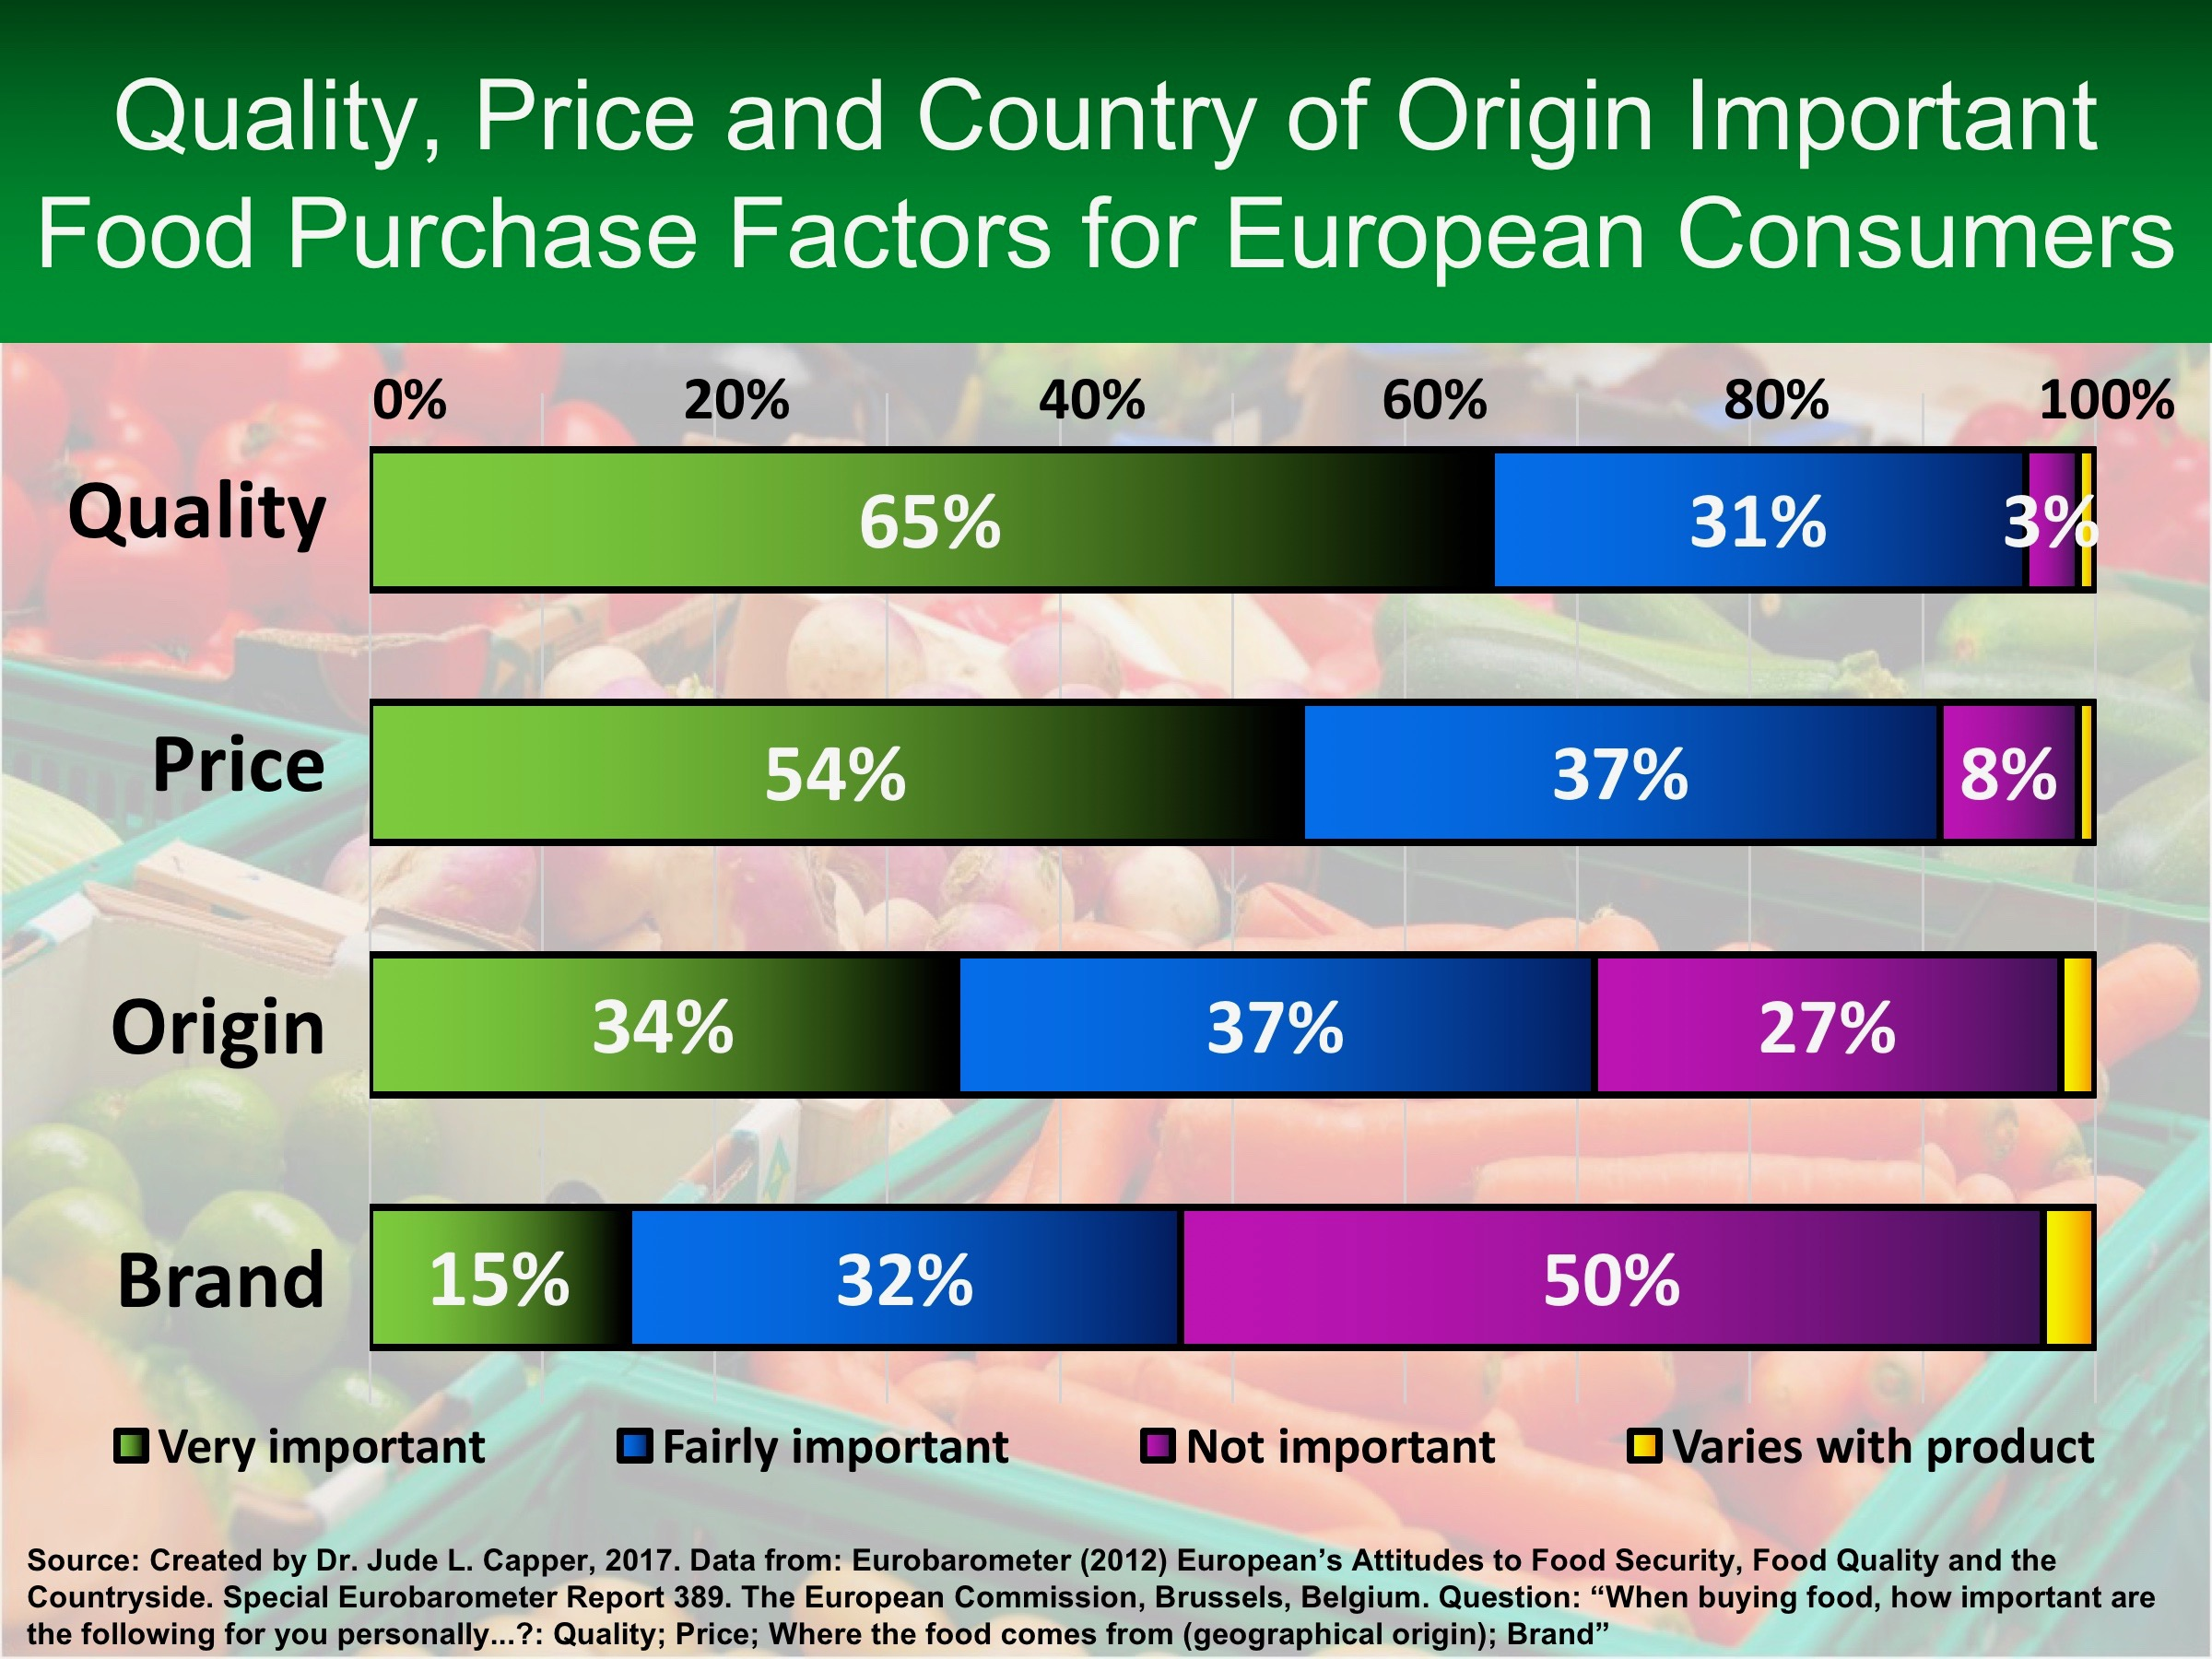 Food purchases for EU consumers